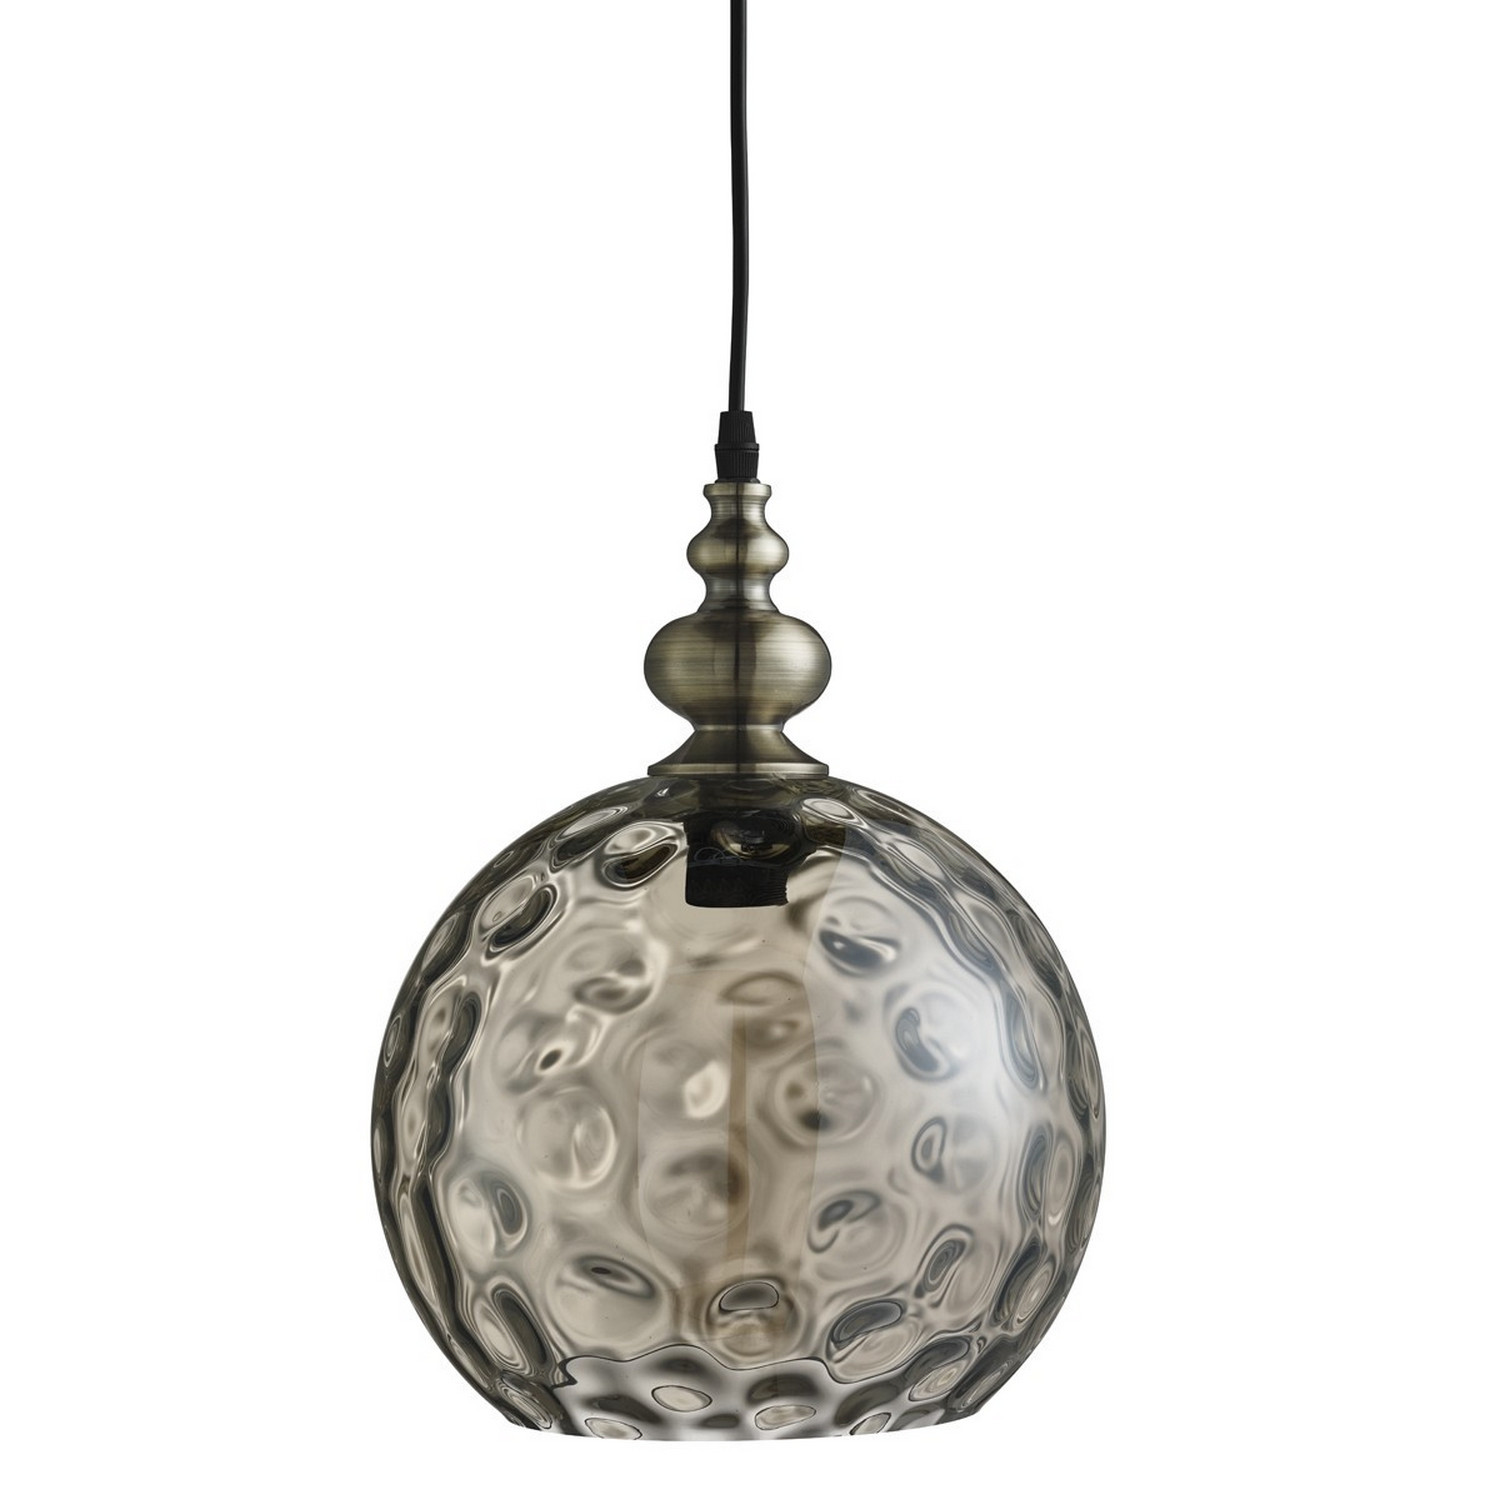 Indiana Antique Brass Globe Ceiling Pendant Light Fitting Dimpled Glass Shade 5053423058566 Ebay